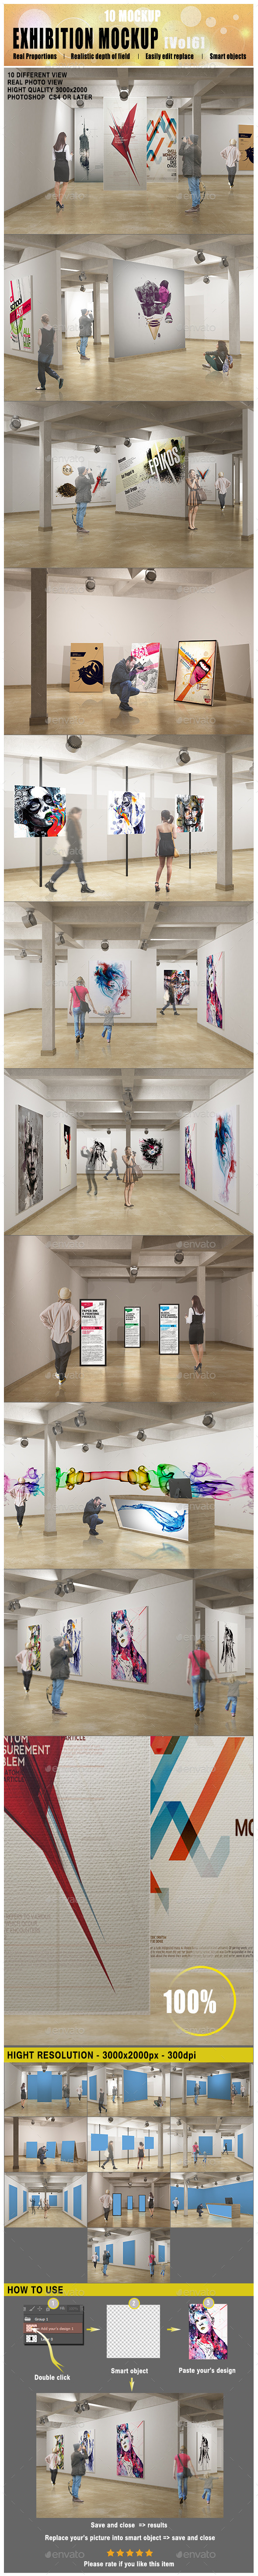 Exhibition Mockup [vol 6] - Posters Print